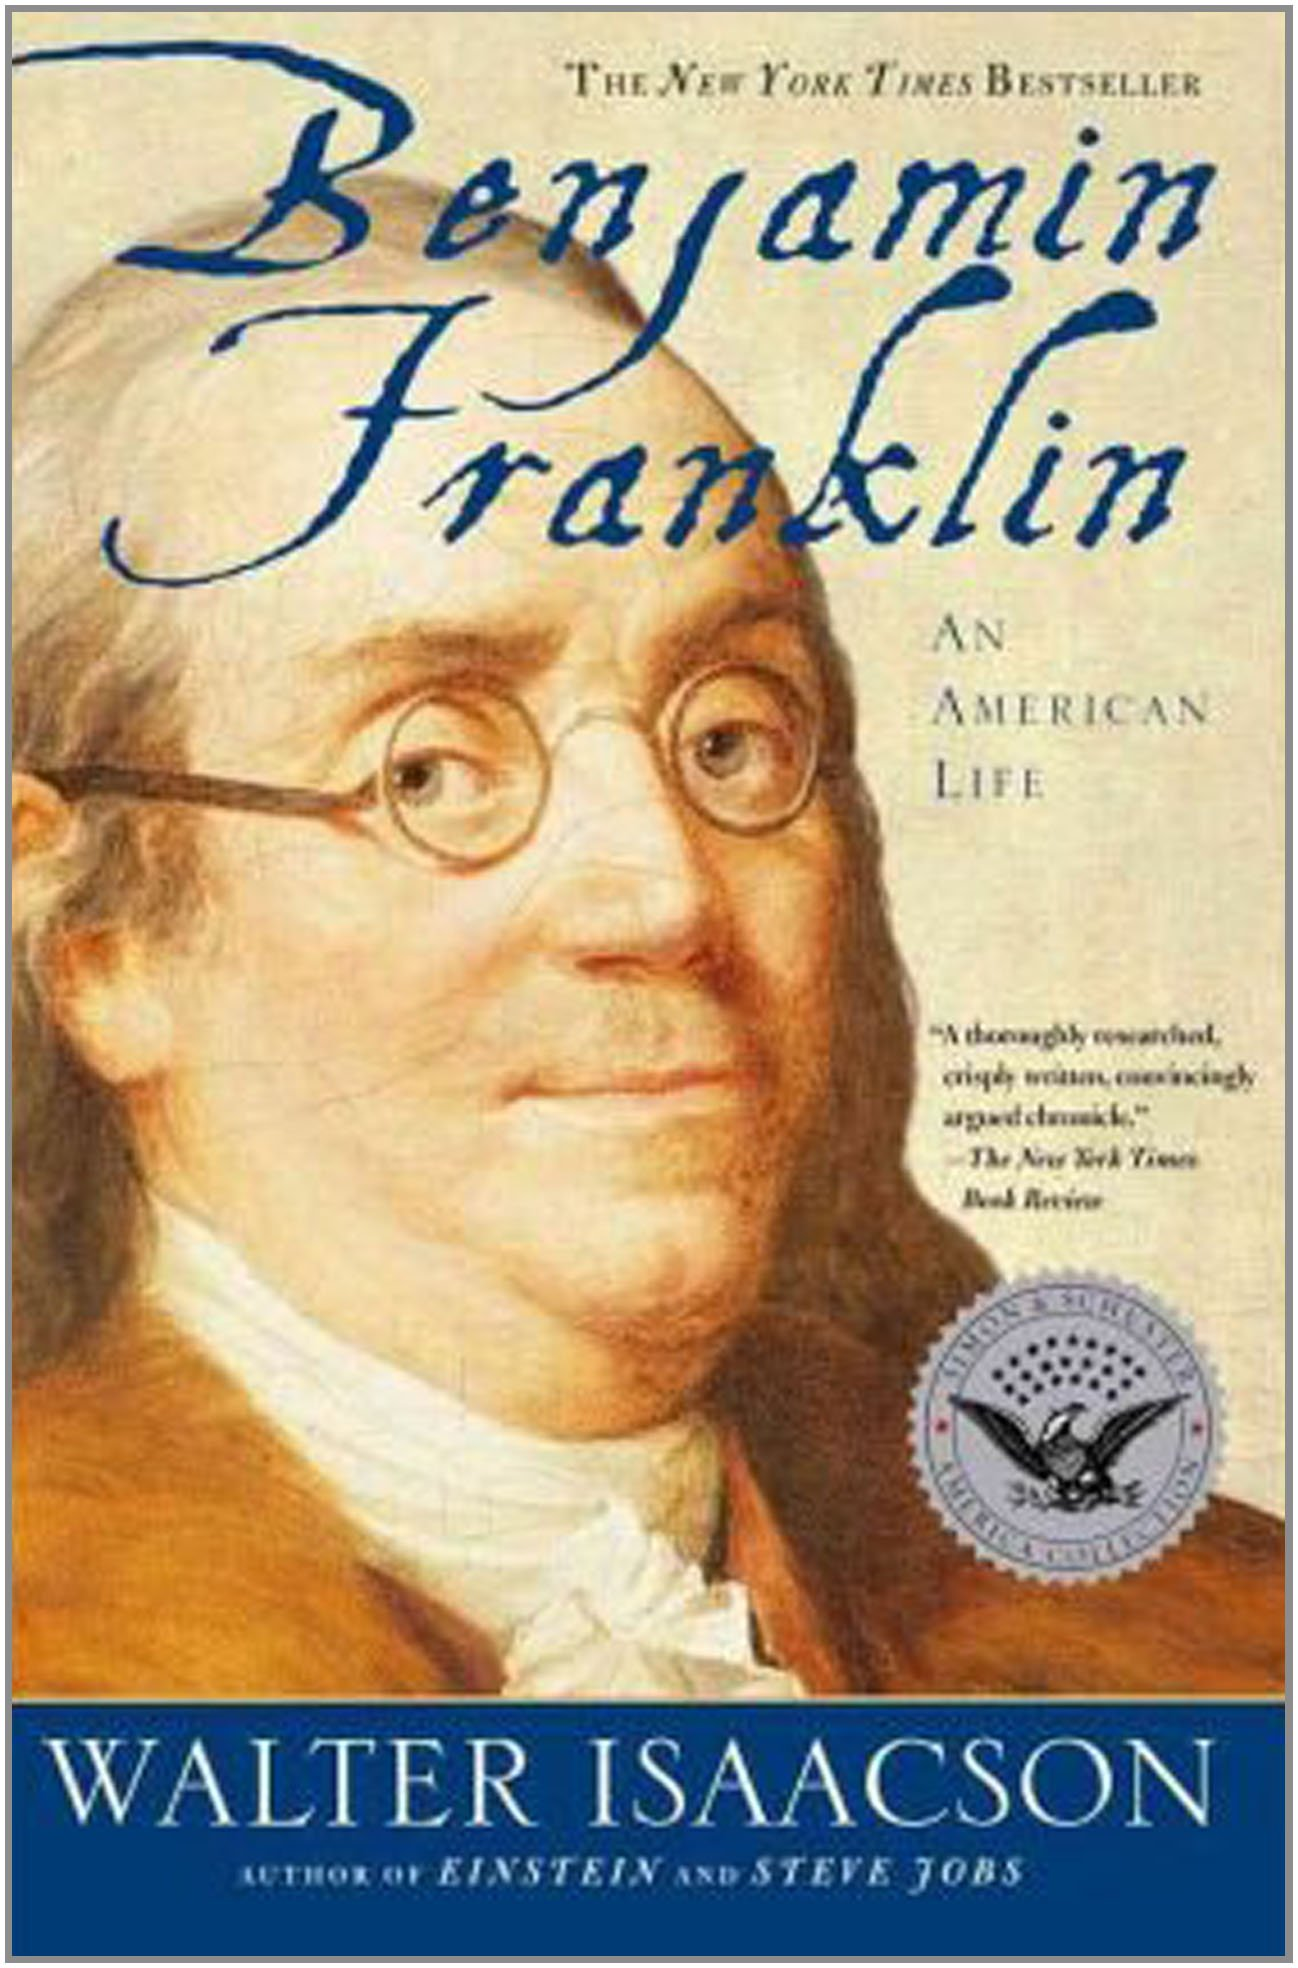 amazon com benjamin franklin an american life  amazon com benjamin franklin an american life 8601400226605 walter isaacson books